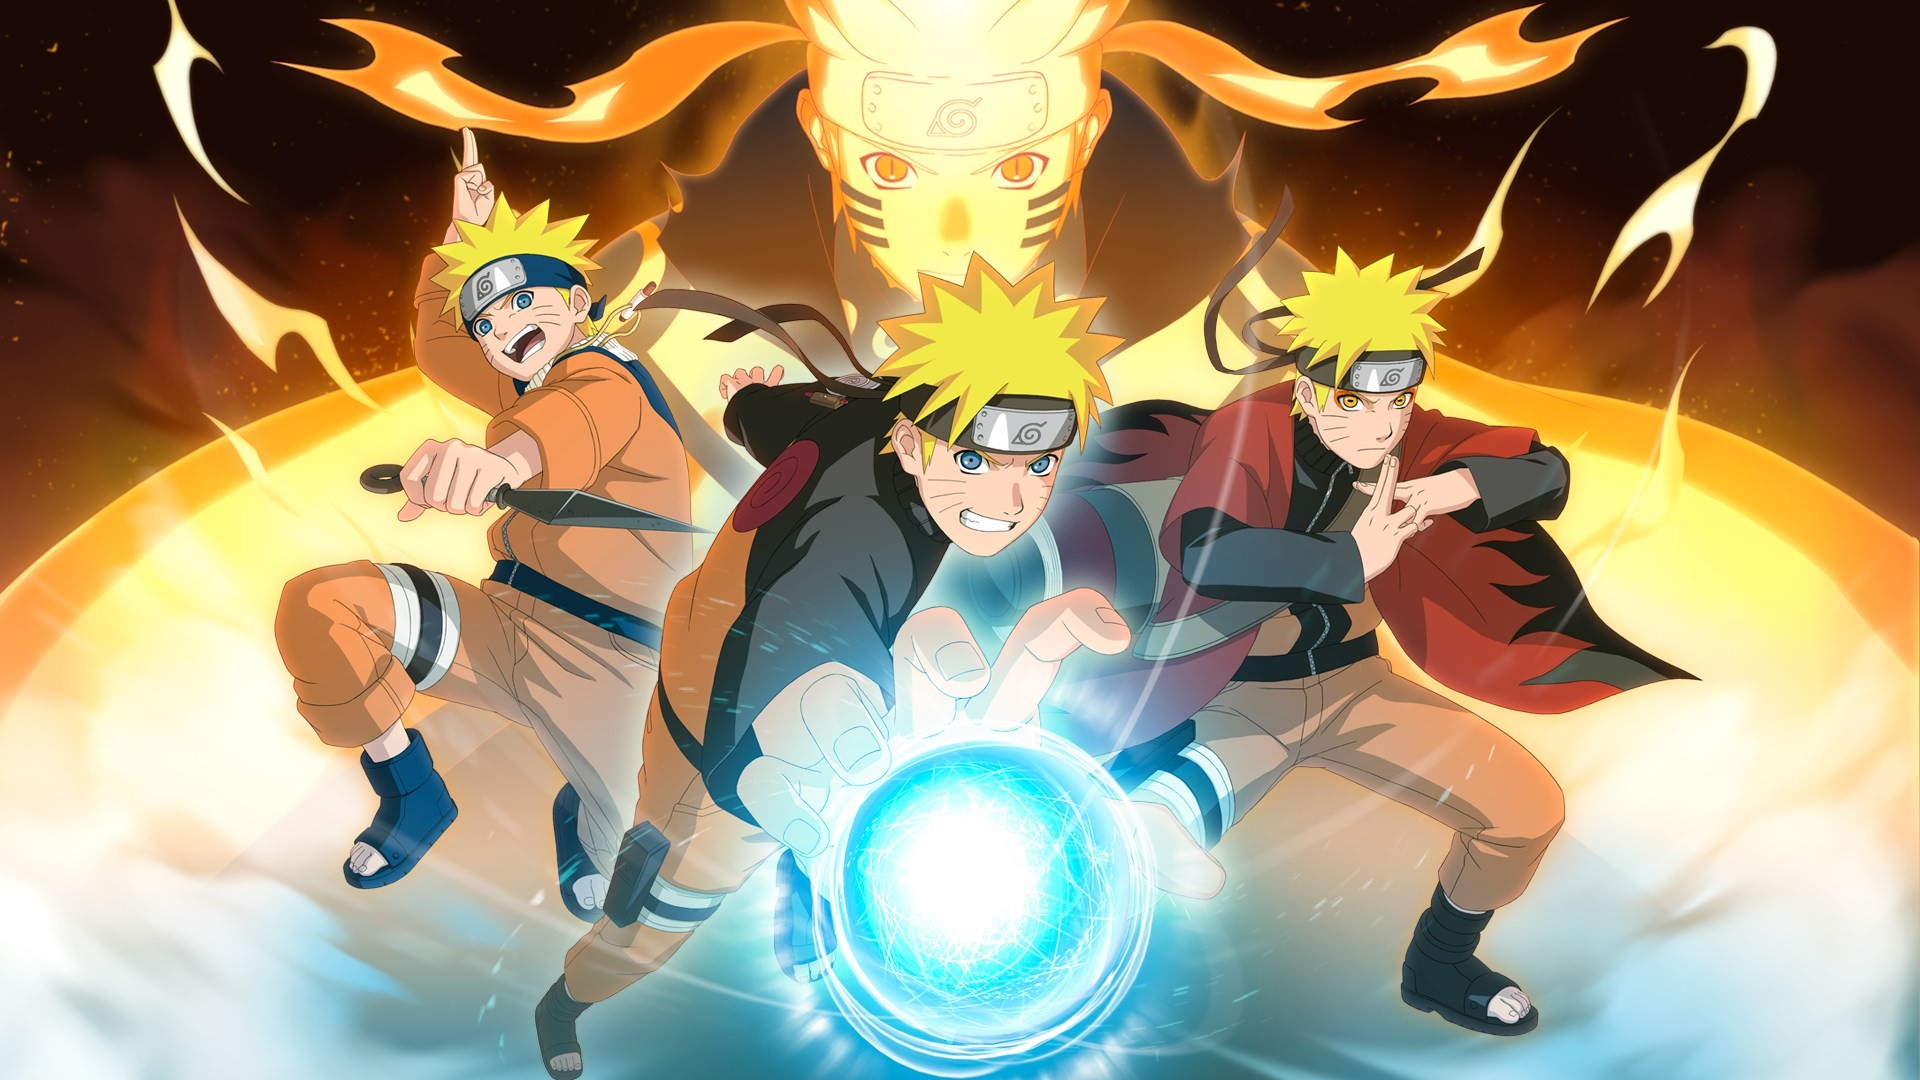 Naruto was entitled with the name 3